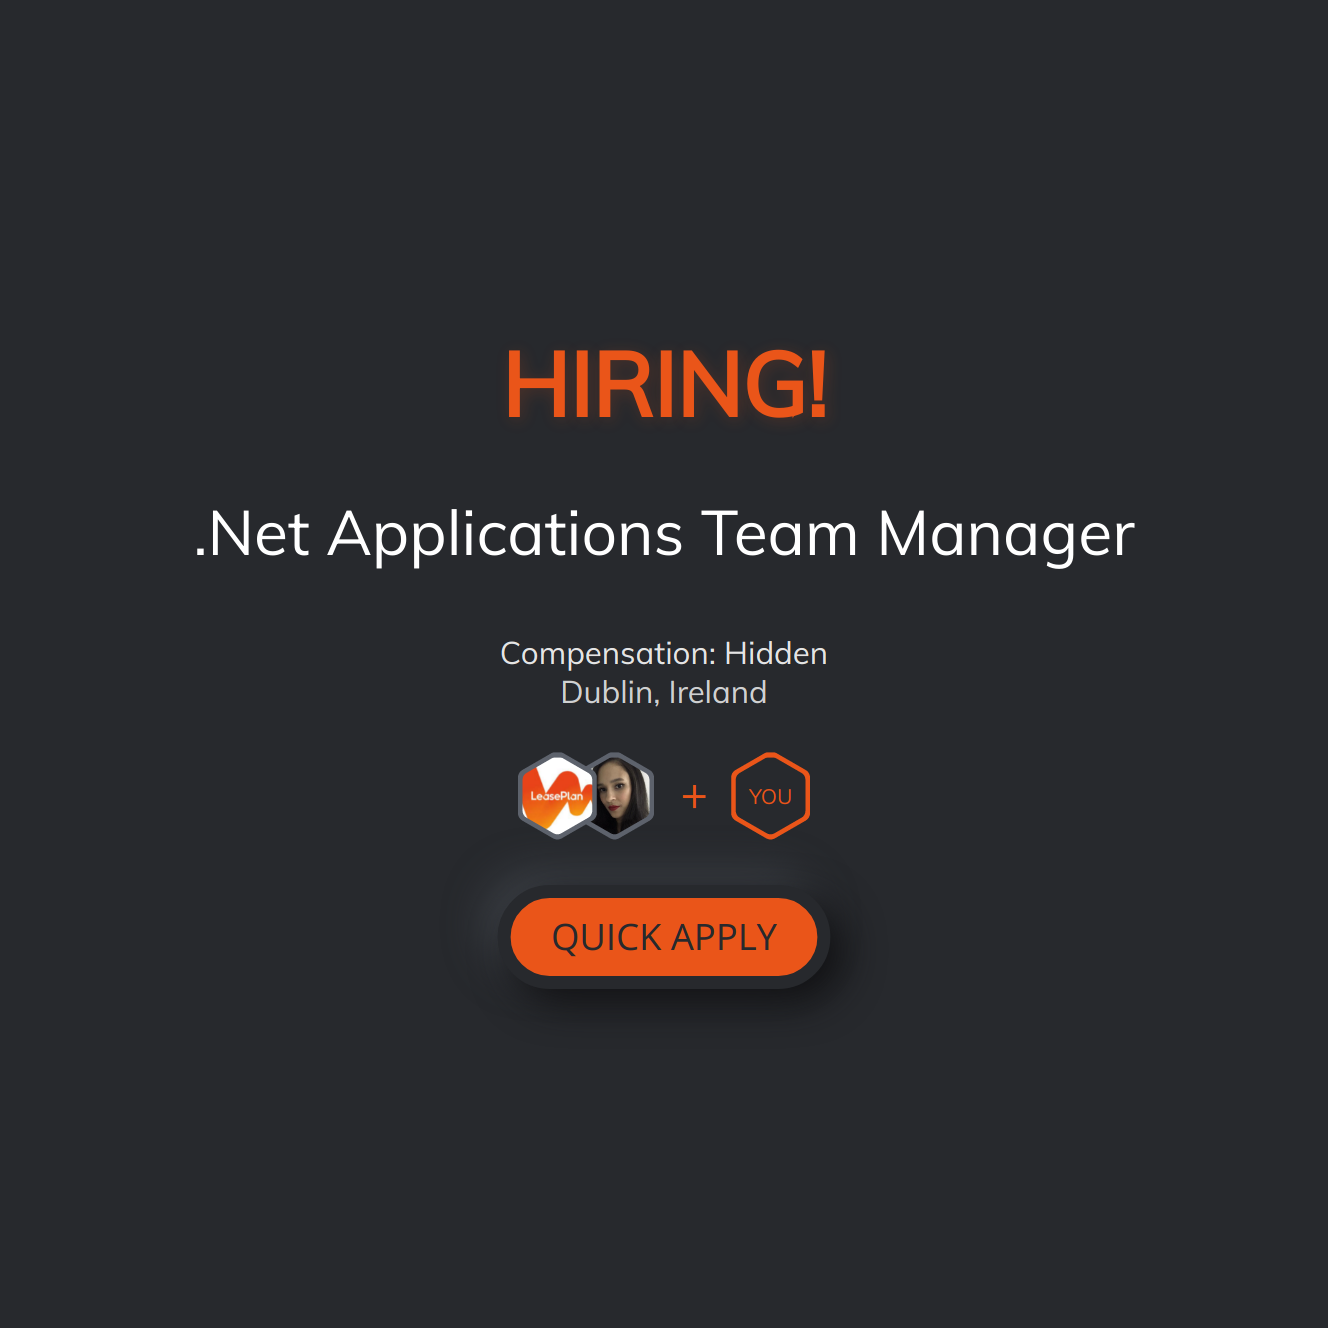 Net Applications Team Manager Torre